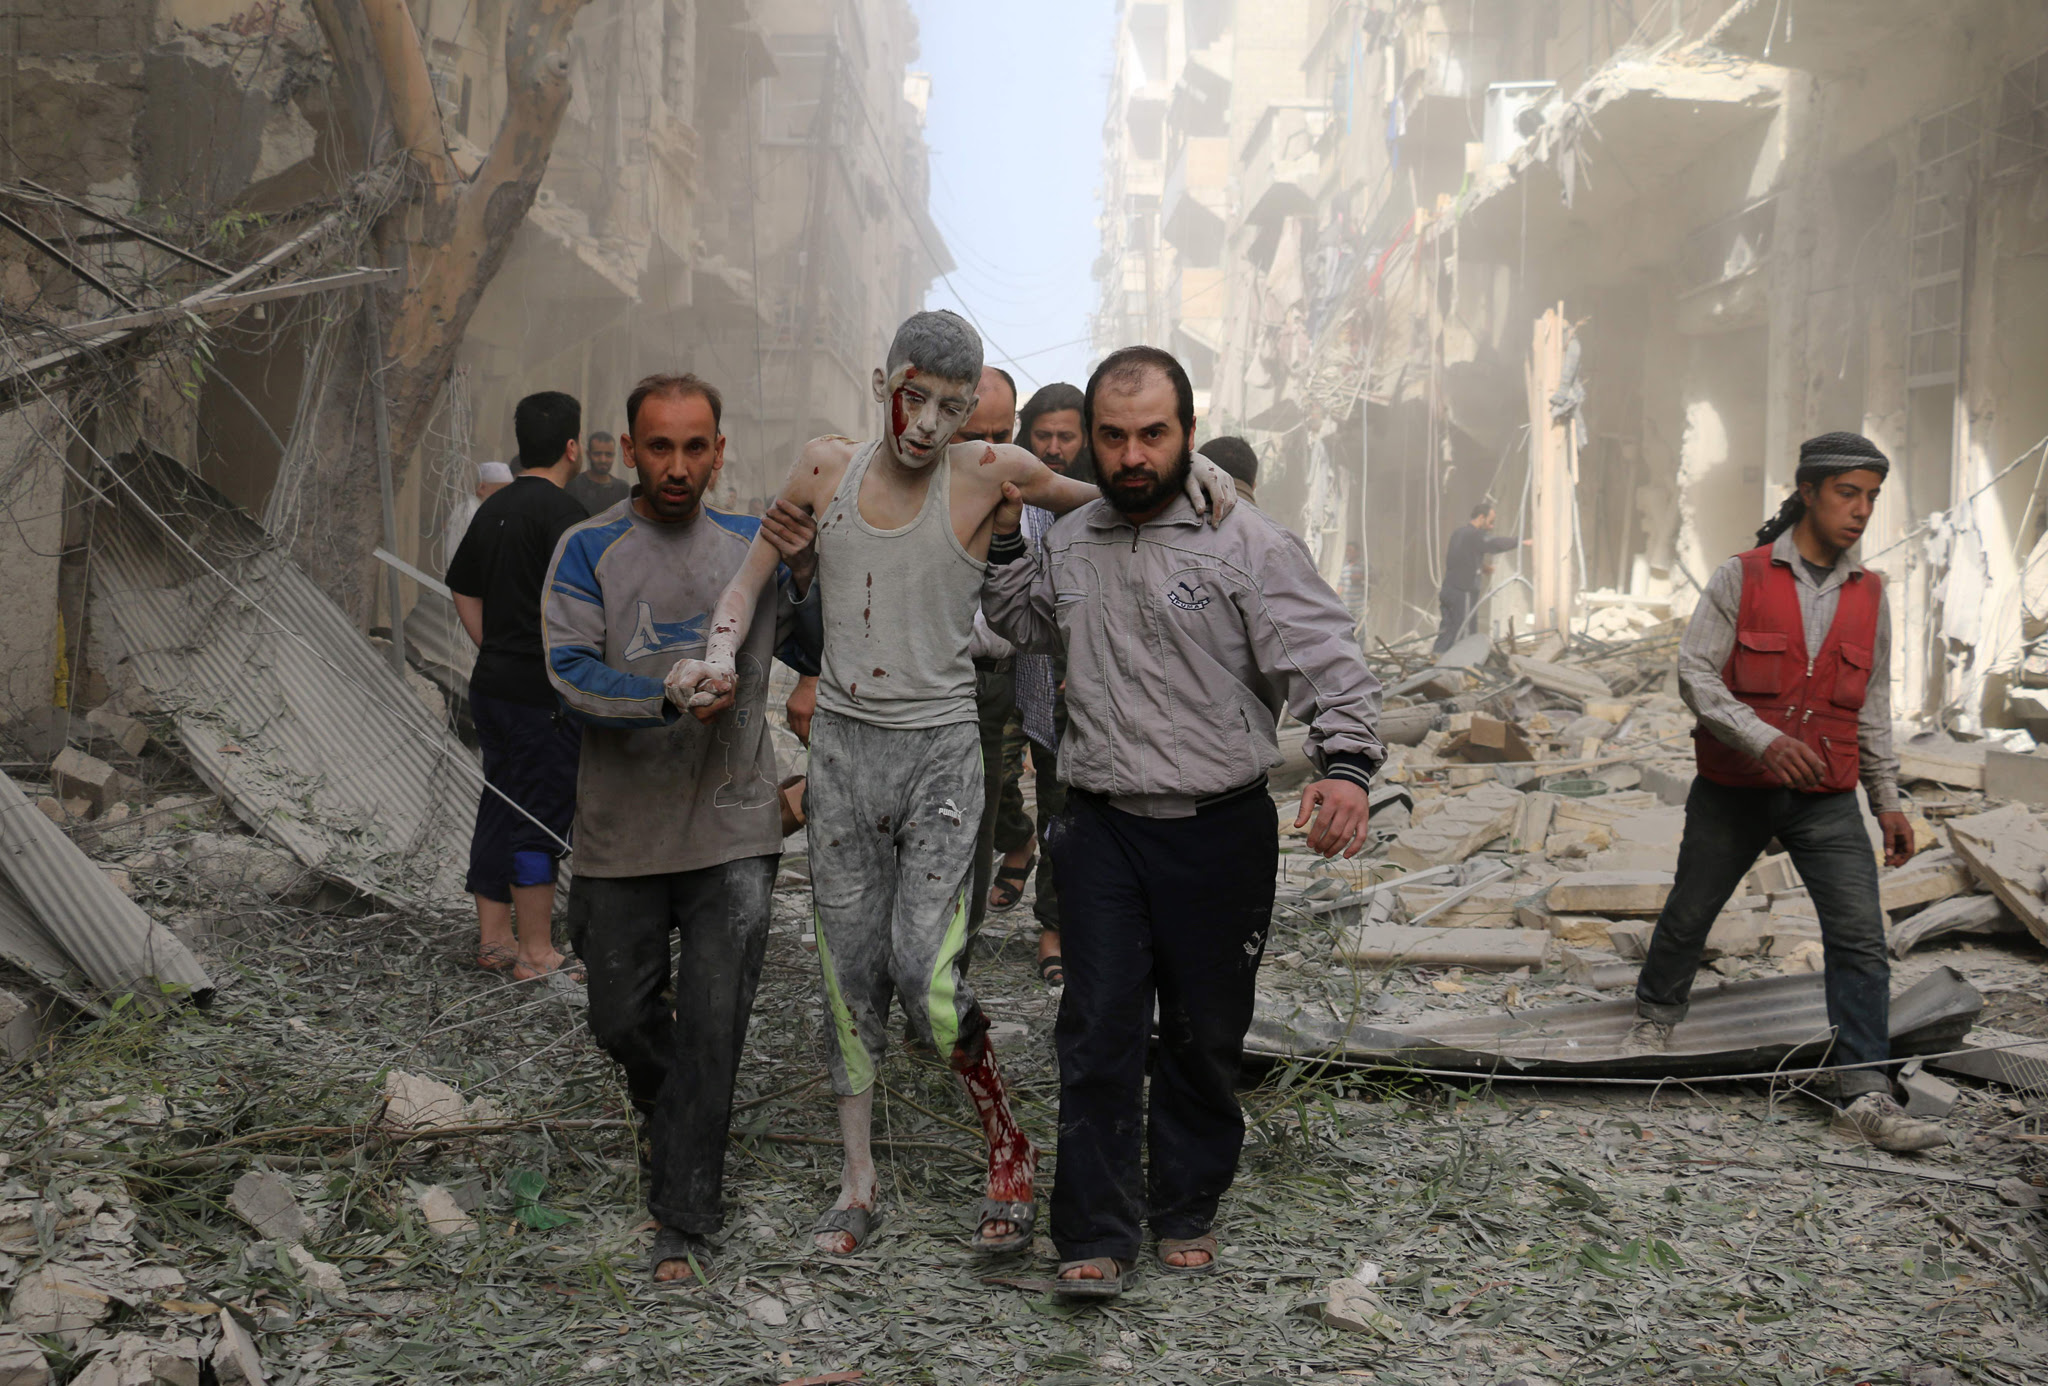 Syrians help a wounded youth following a...Syrians help a wounded youth following an air strike on the Fardous rebel held neighbourhood of the northern Syrian city of Aleppo on April 26, 2016.  / AFP PHOTO / AMEER ALHALBIAMEER ALHALBI/AFP/Getty Images